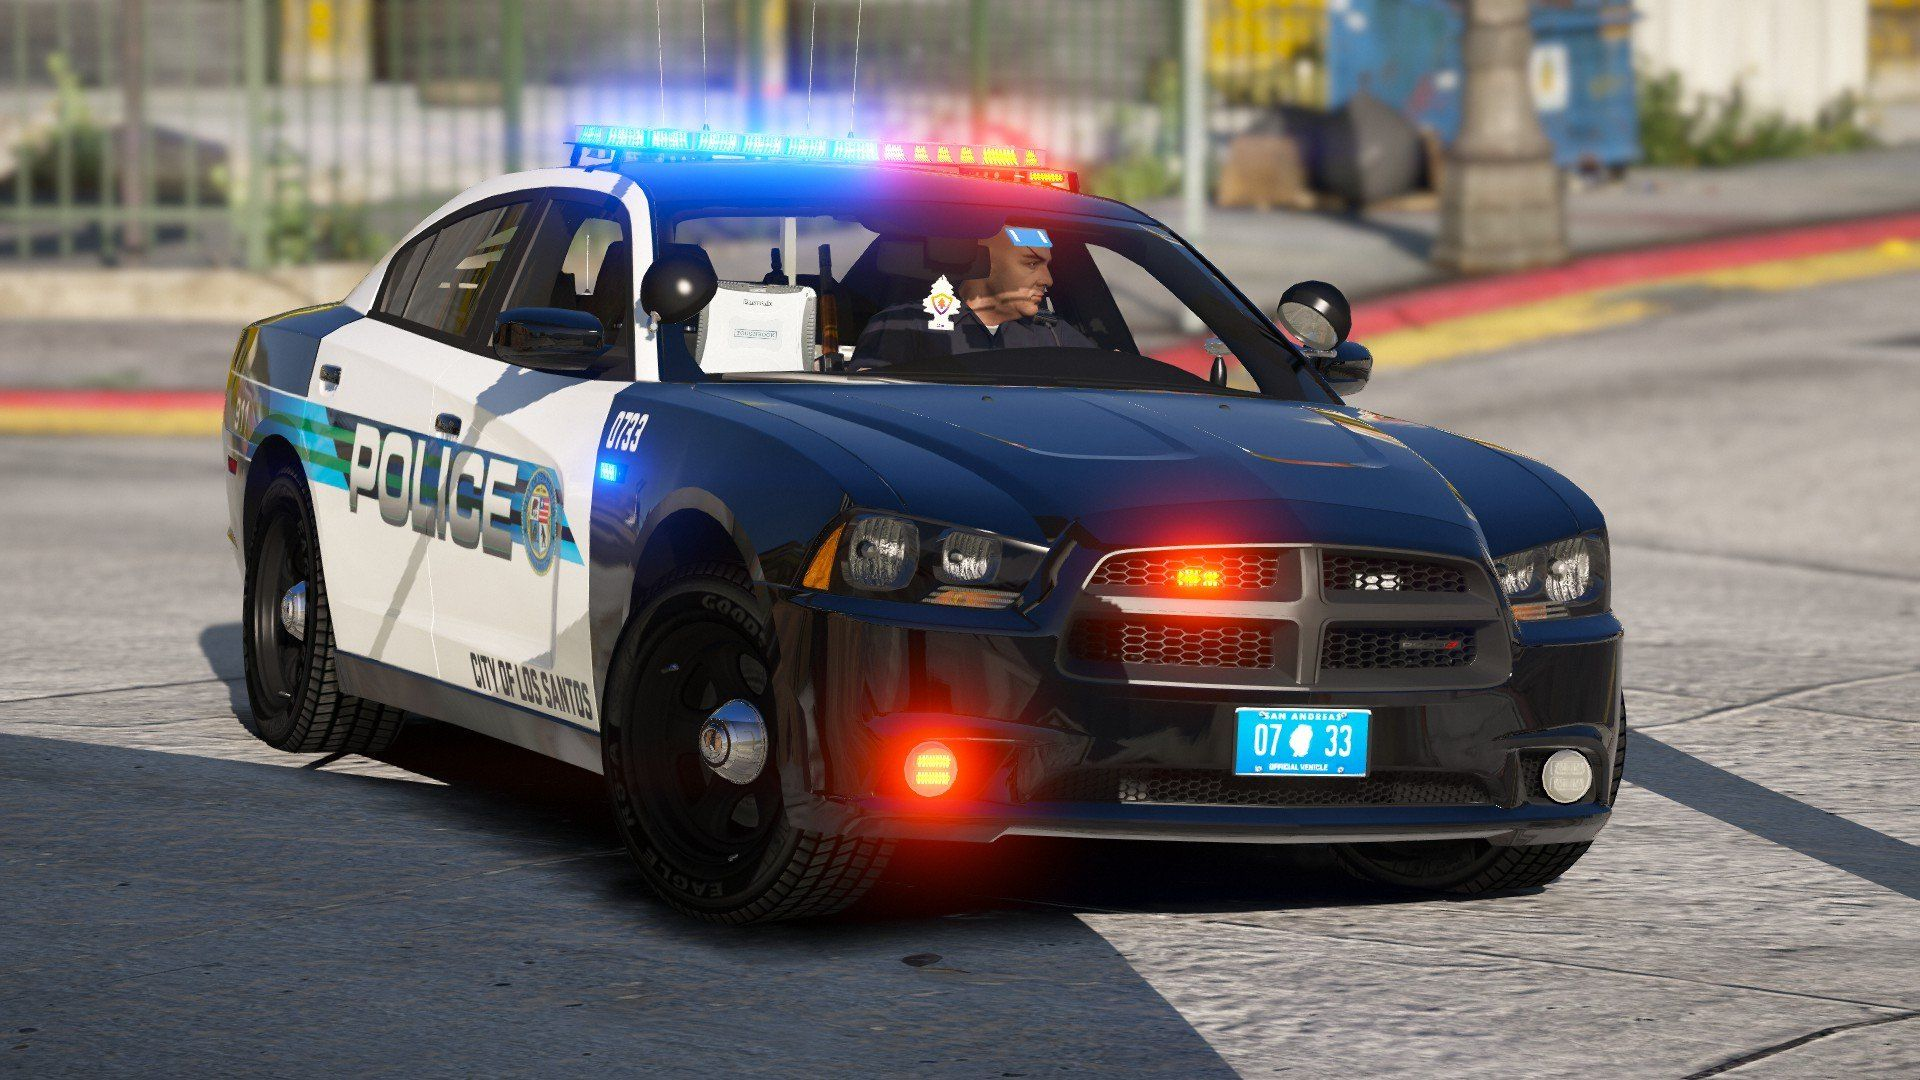 Pin By Asha On Police Cars In 2020 Police Cars Gta Cars Police